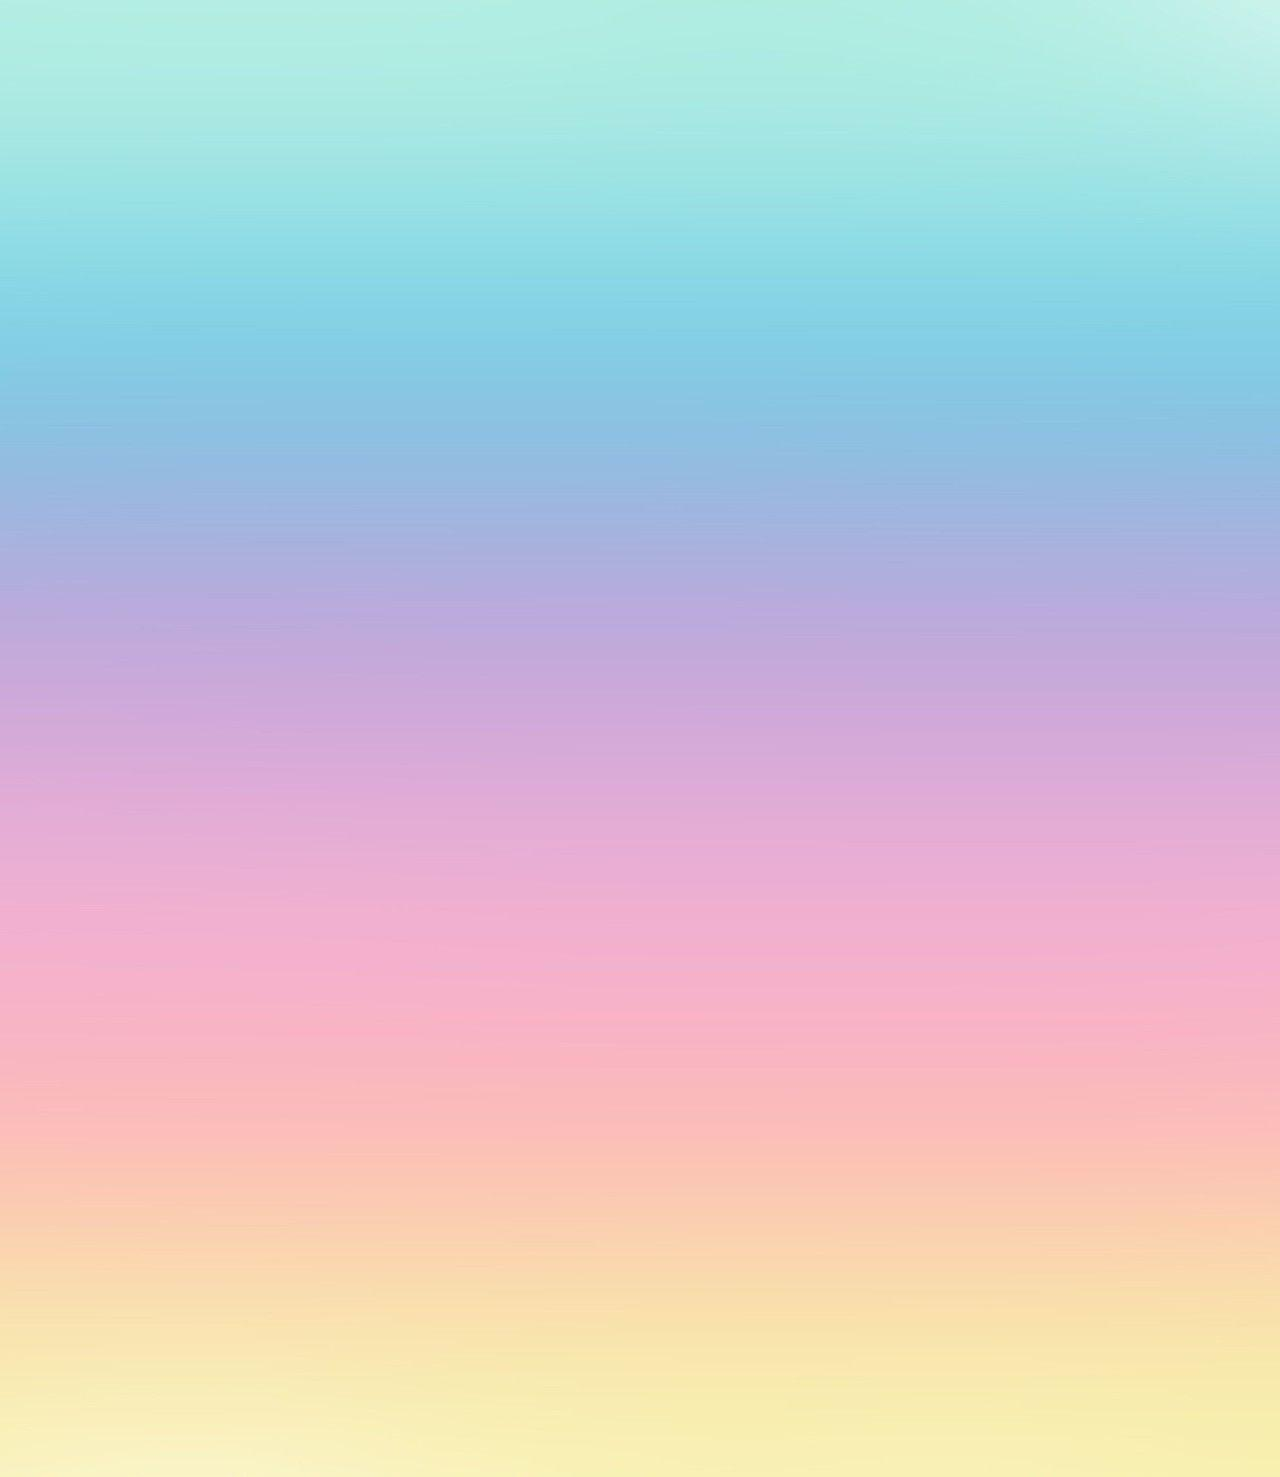 Ombre Aesthetic Pastel Wallpapers Wallpaper Cave